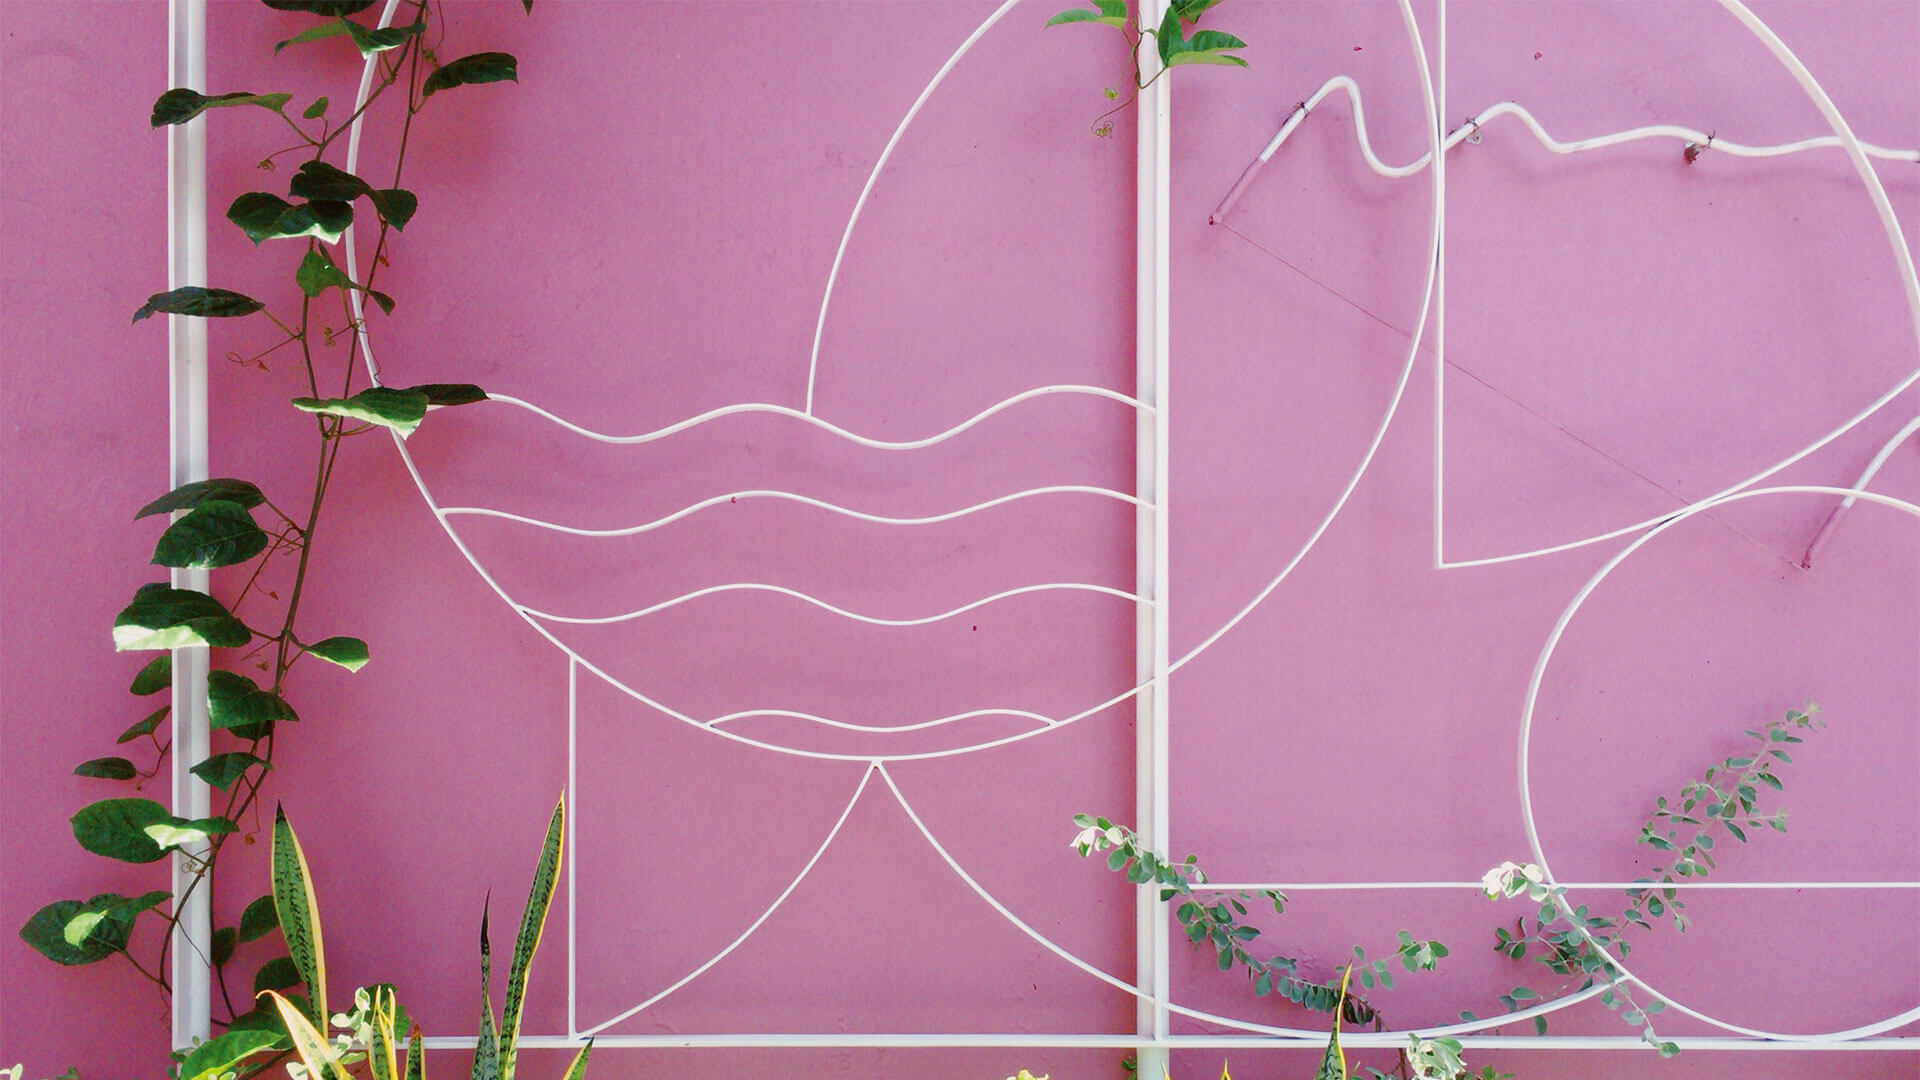 Abstract metal designs on a bright pink wall at KL Journal Hotel